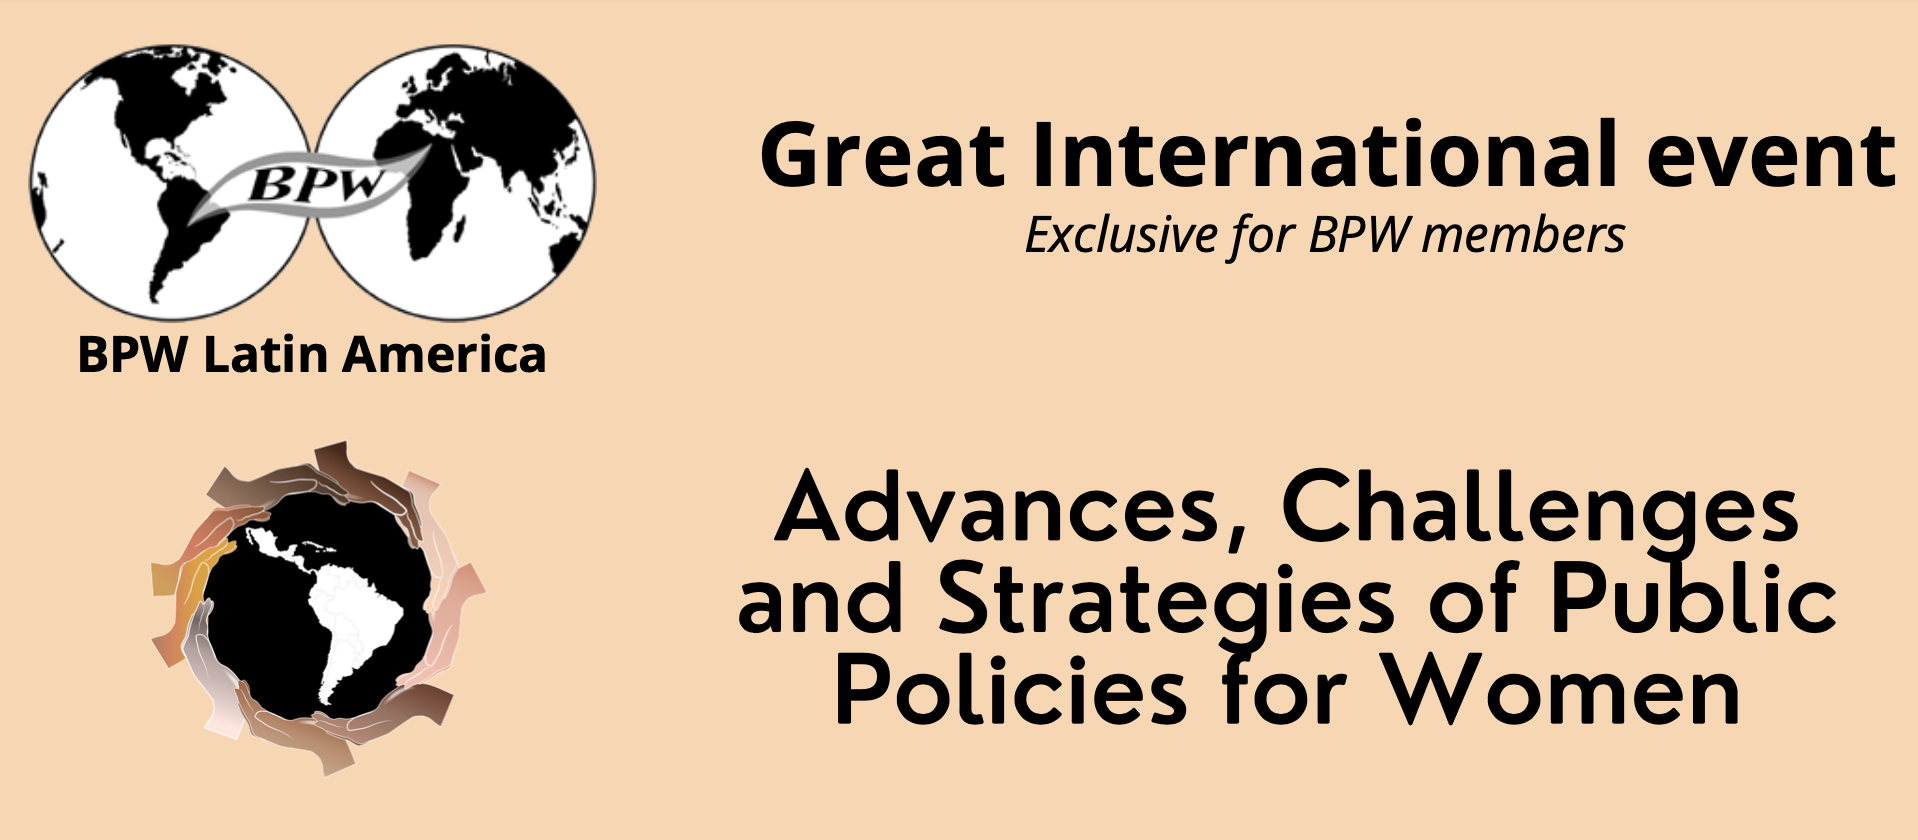 Advances, Challenges and Strategies of Public Policies for Women